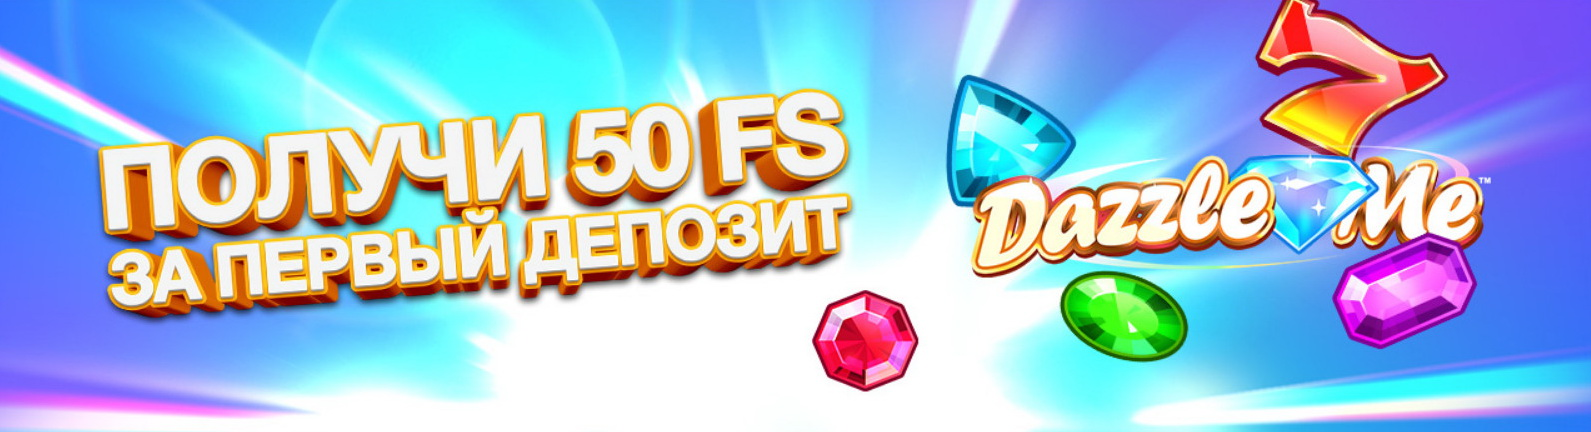 Casino free spins on Deposit